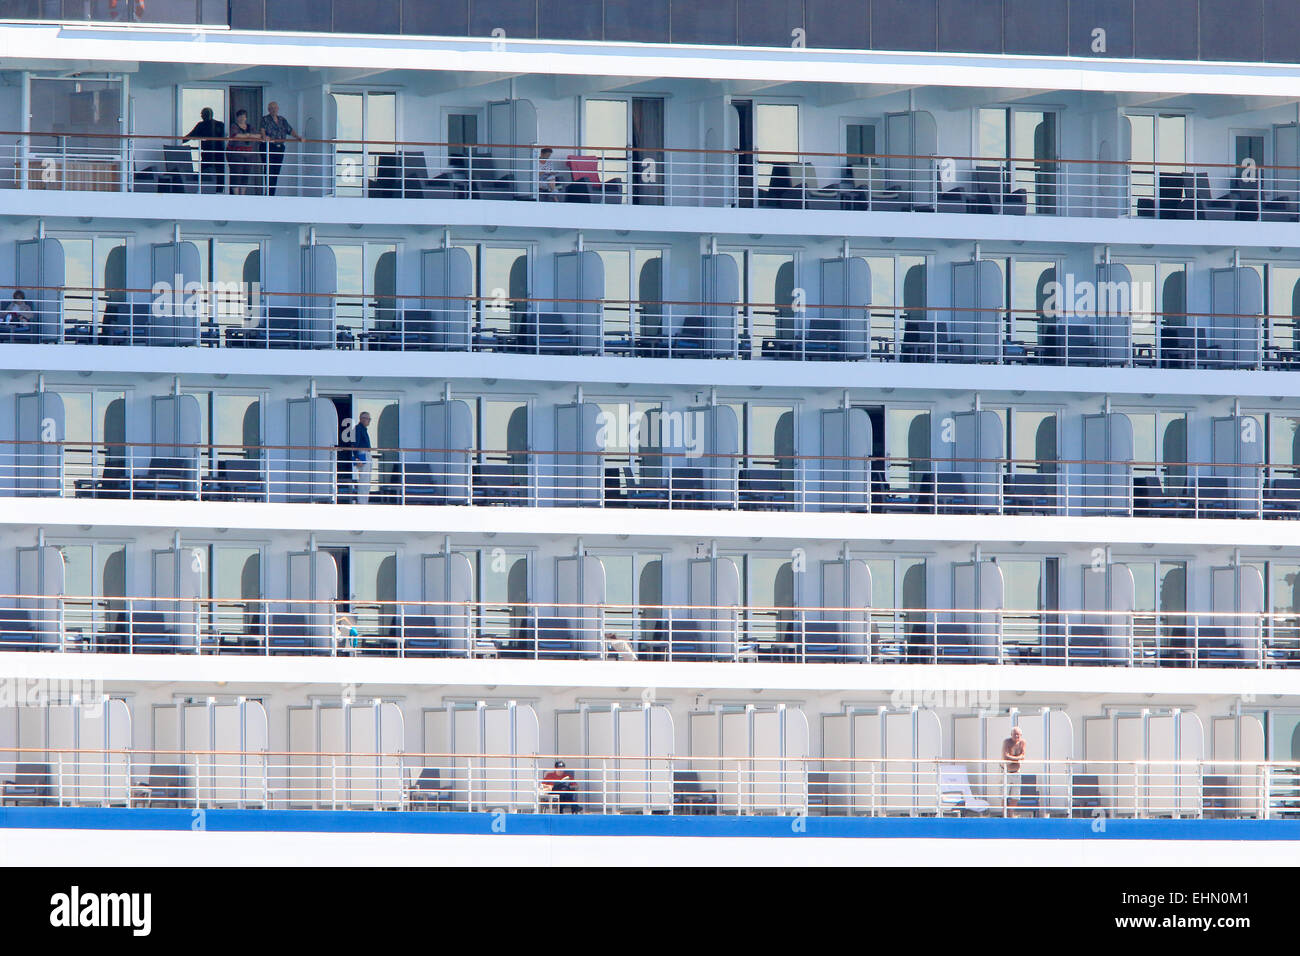 Cruise ship with passengers standing at balcony. - Stock Image